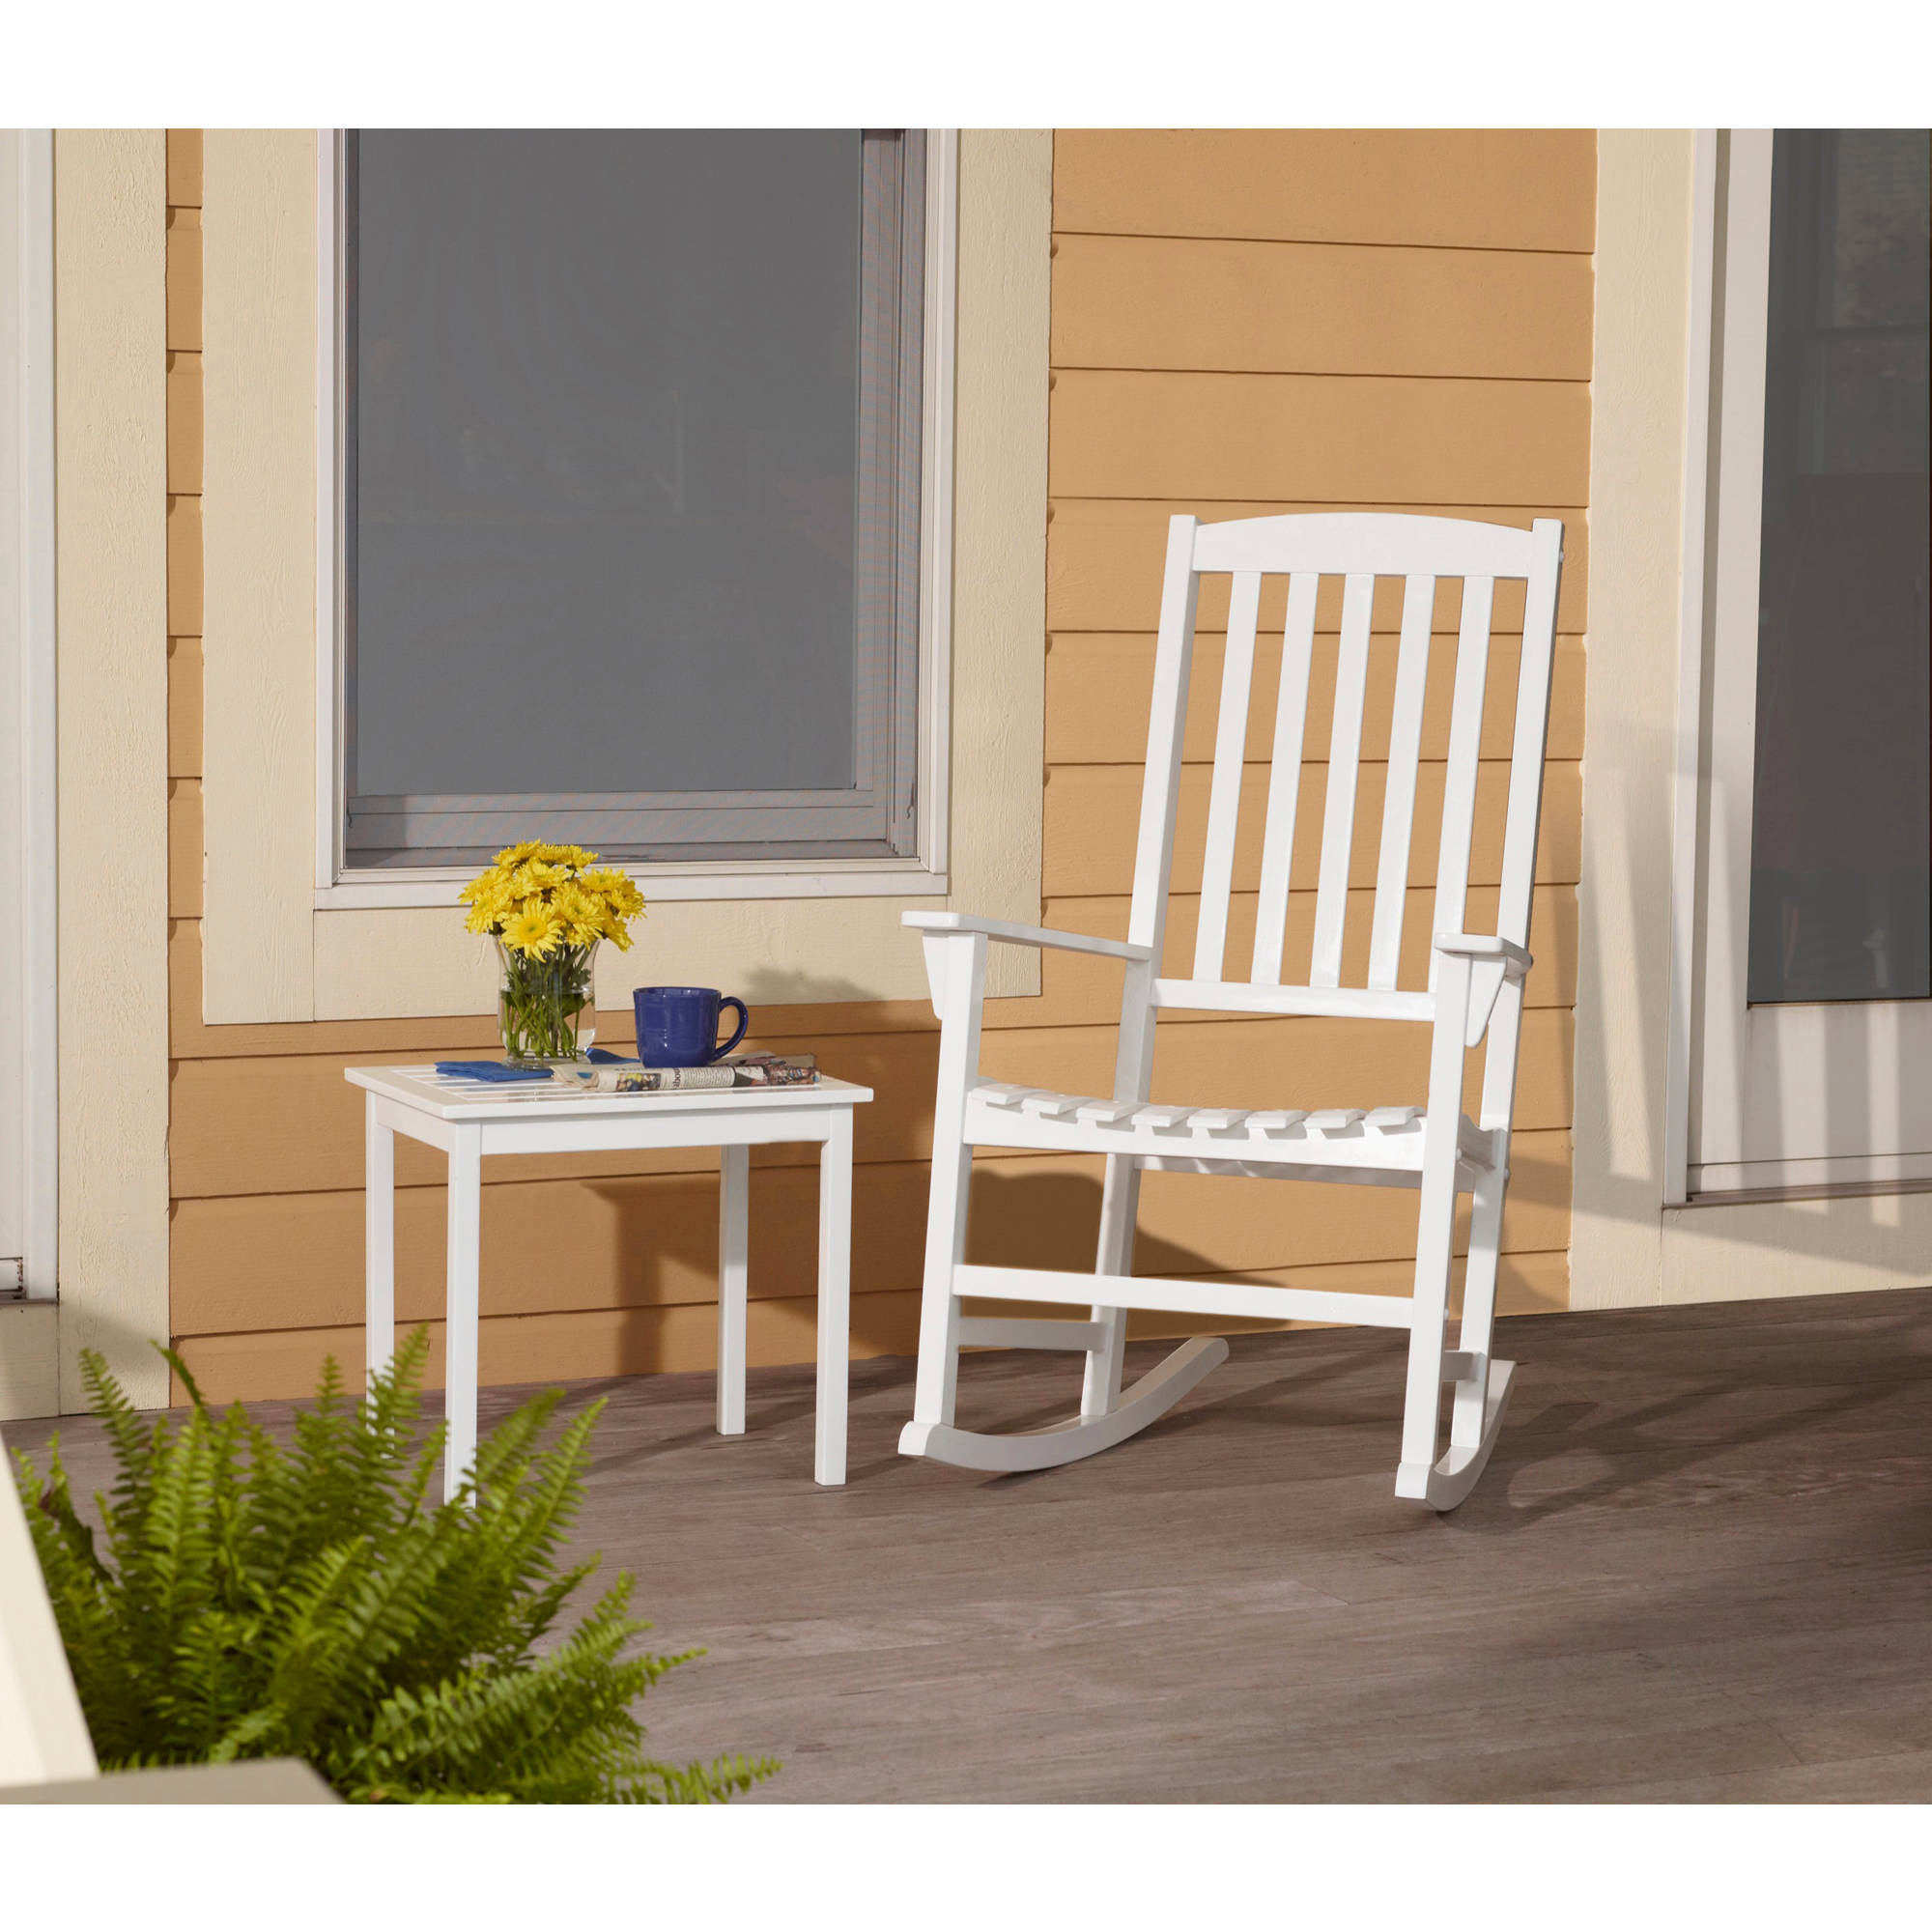 outdoor rocking chairs mainstays outdoor rocking chair, multiple colors - walmart.com EVIBVIX